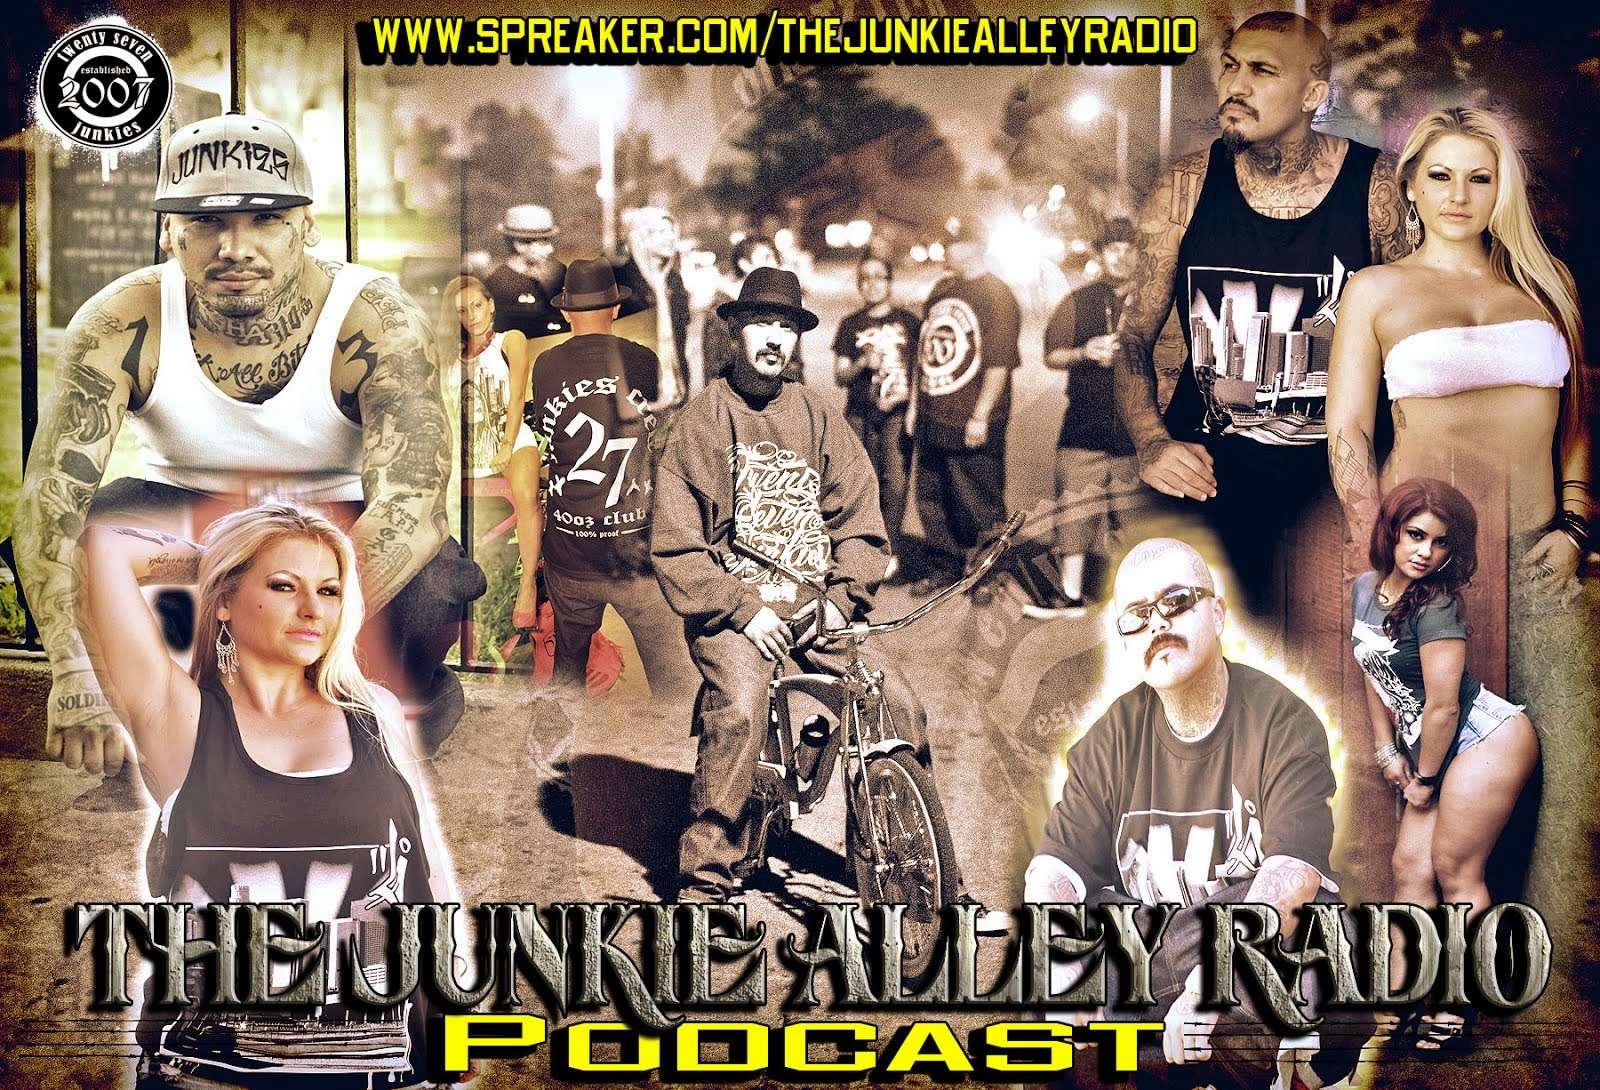 The Junkie Alley Radio